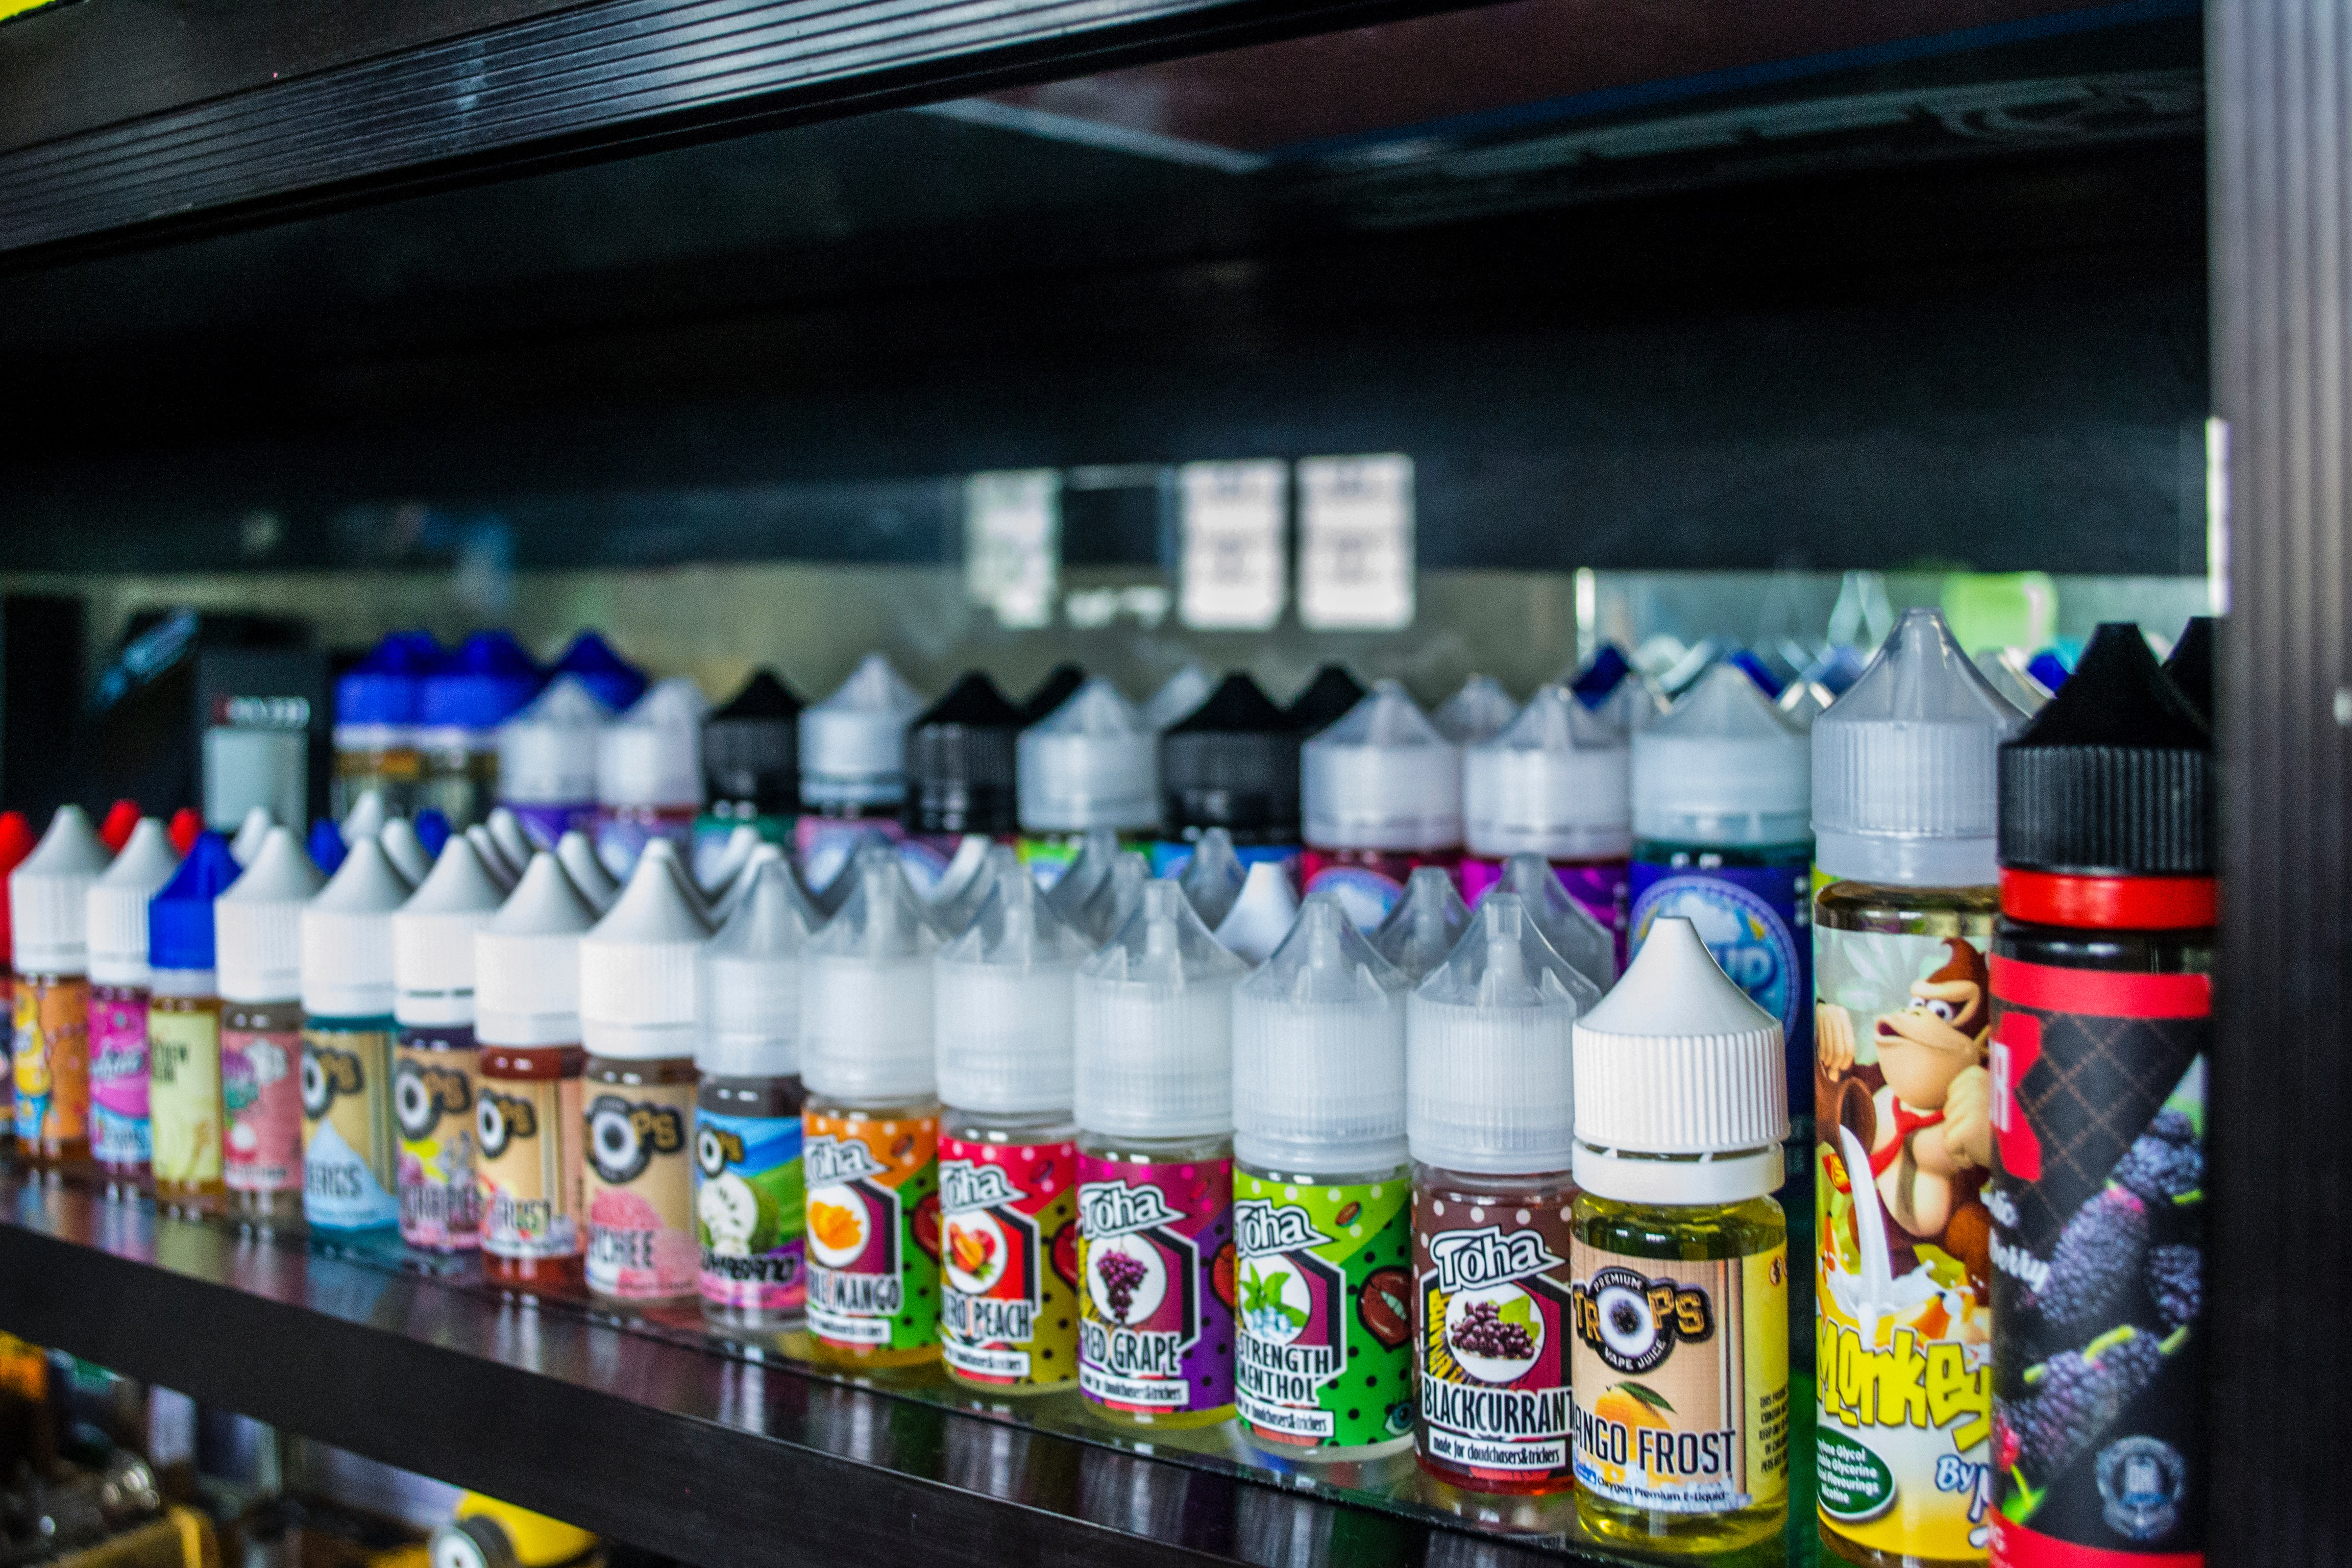 Fruit- and Candy-Flavored Vape Juice Are Most Popular Among Two Age